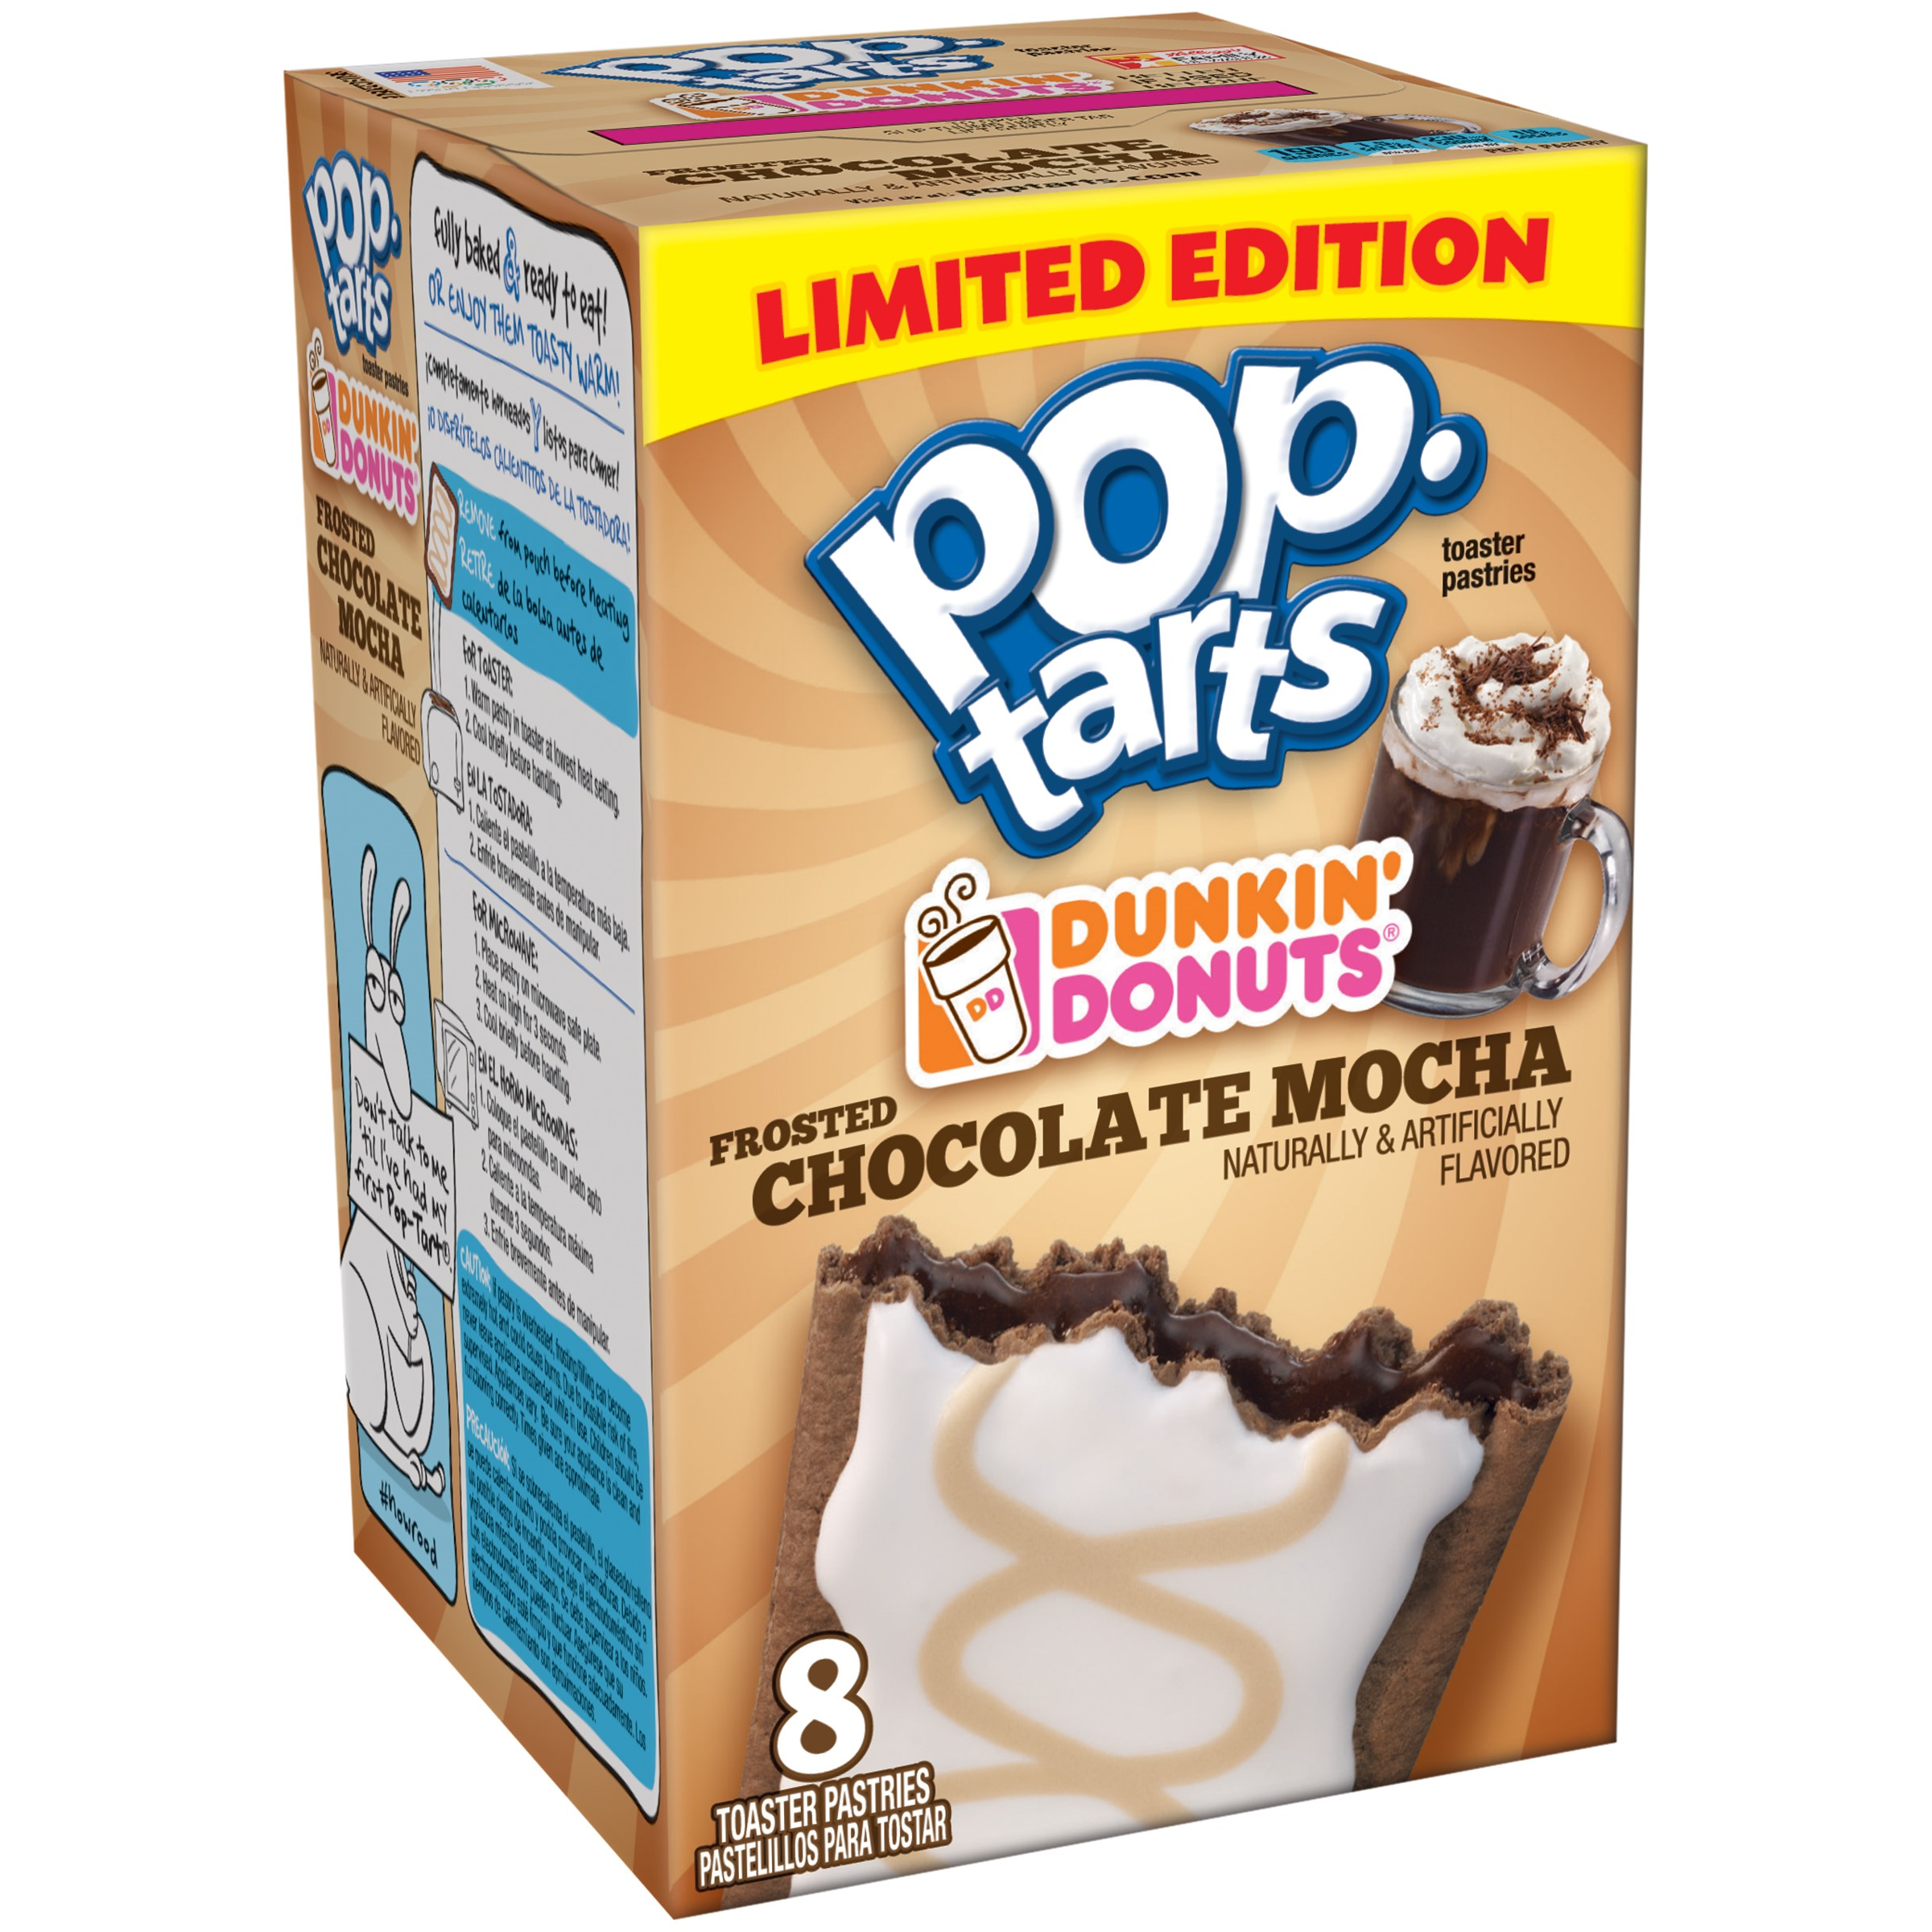 Kelloggs Pop-Tarts, Dunkin Donuts Frosted Chocolate Mocha, 8 Ct